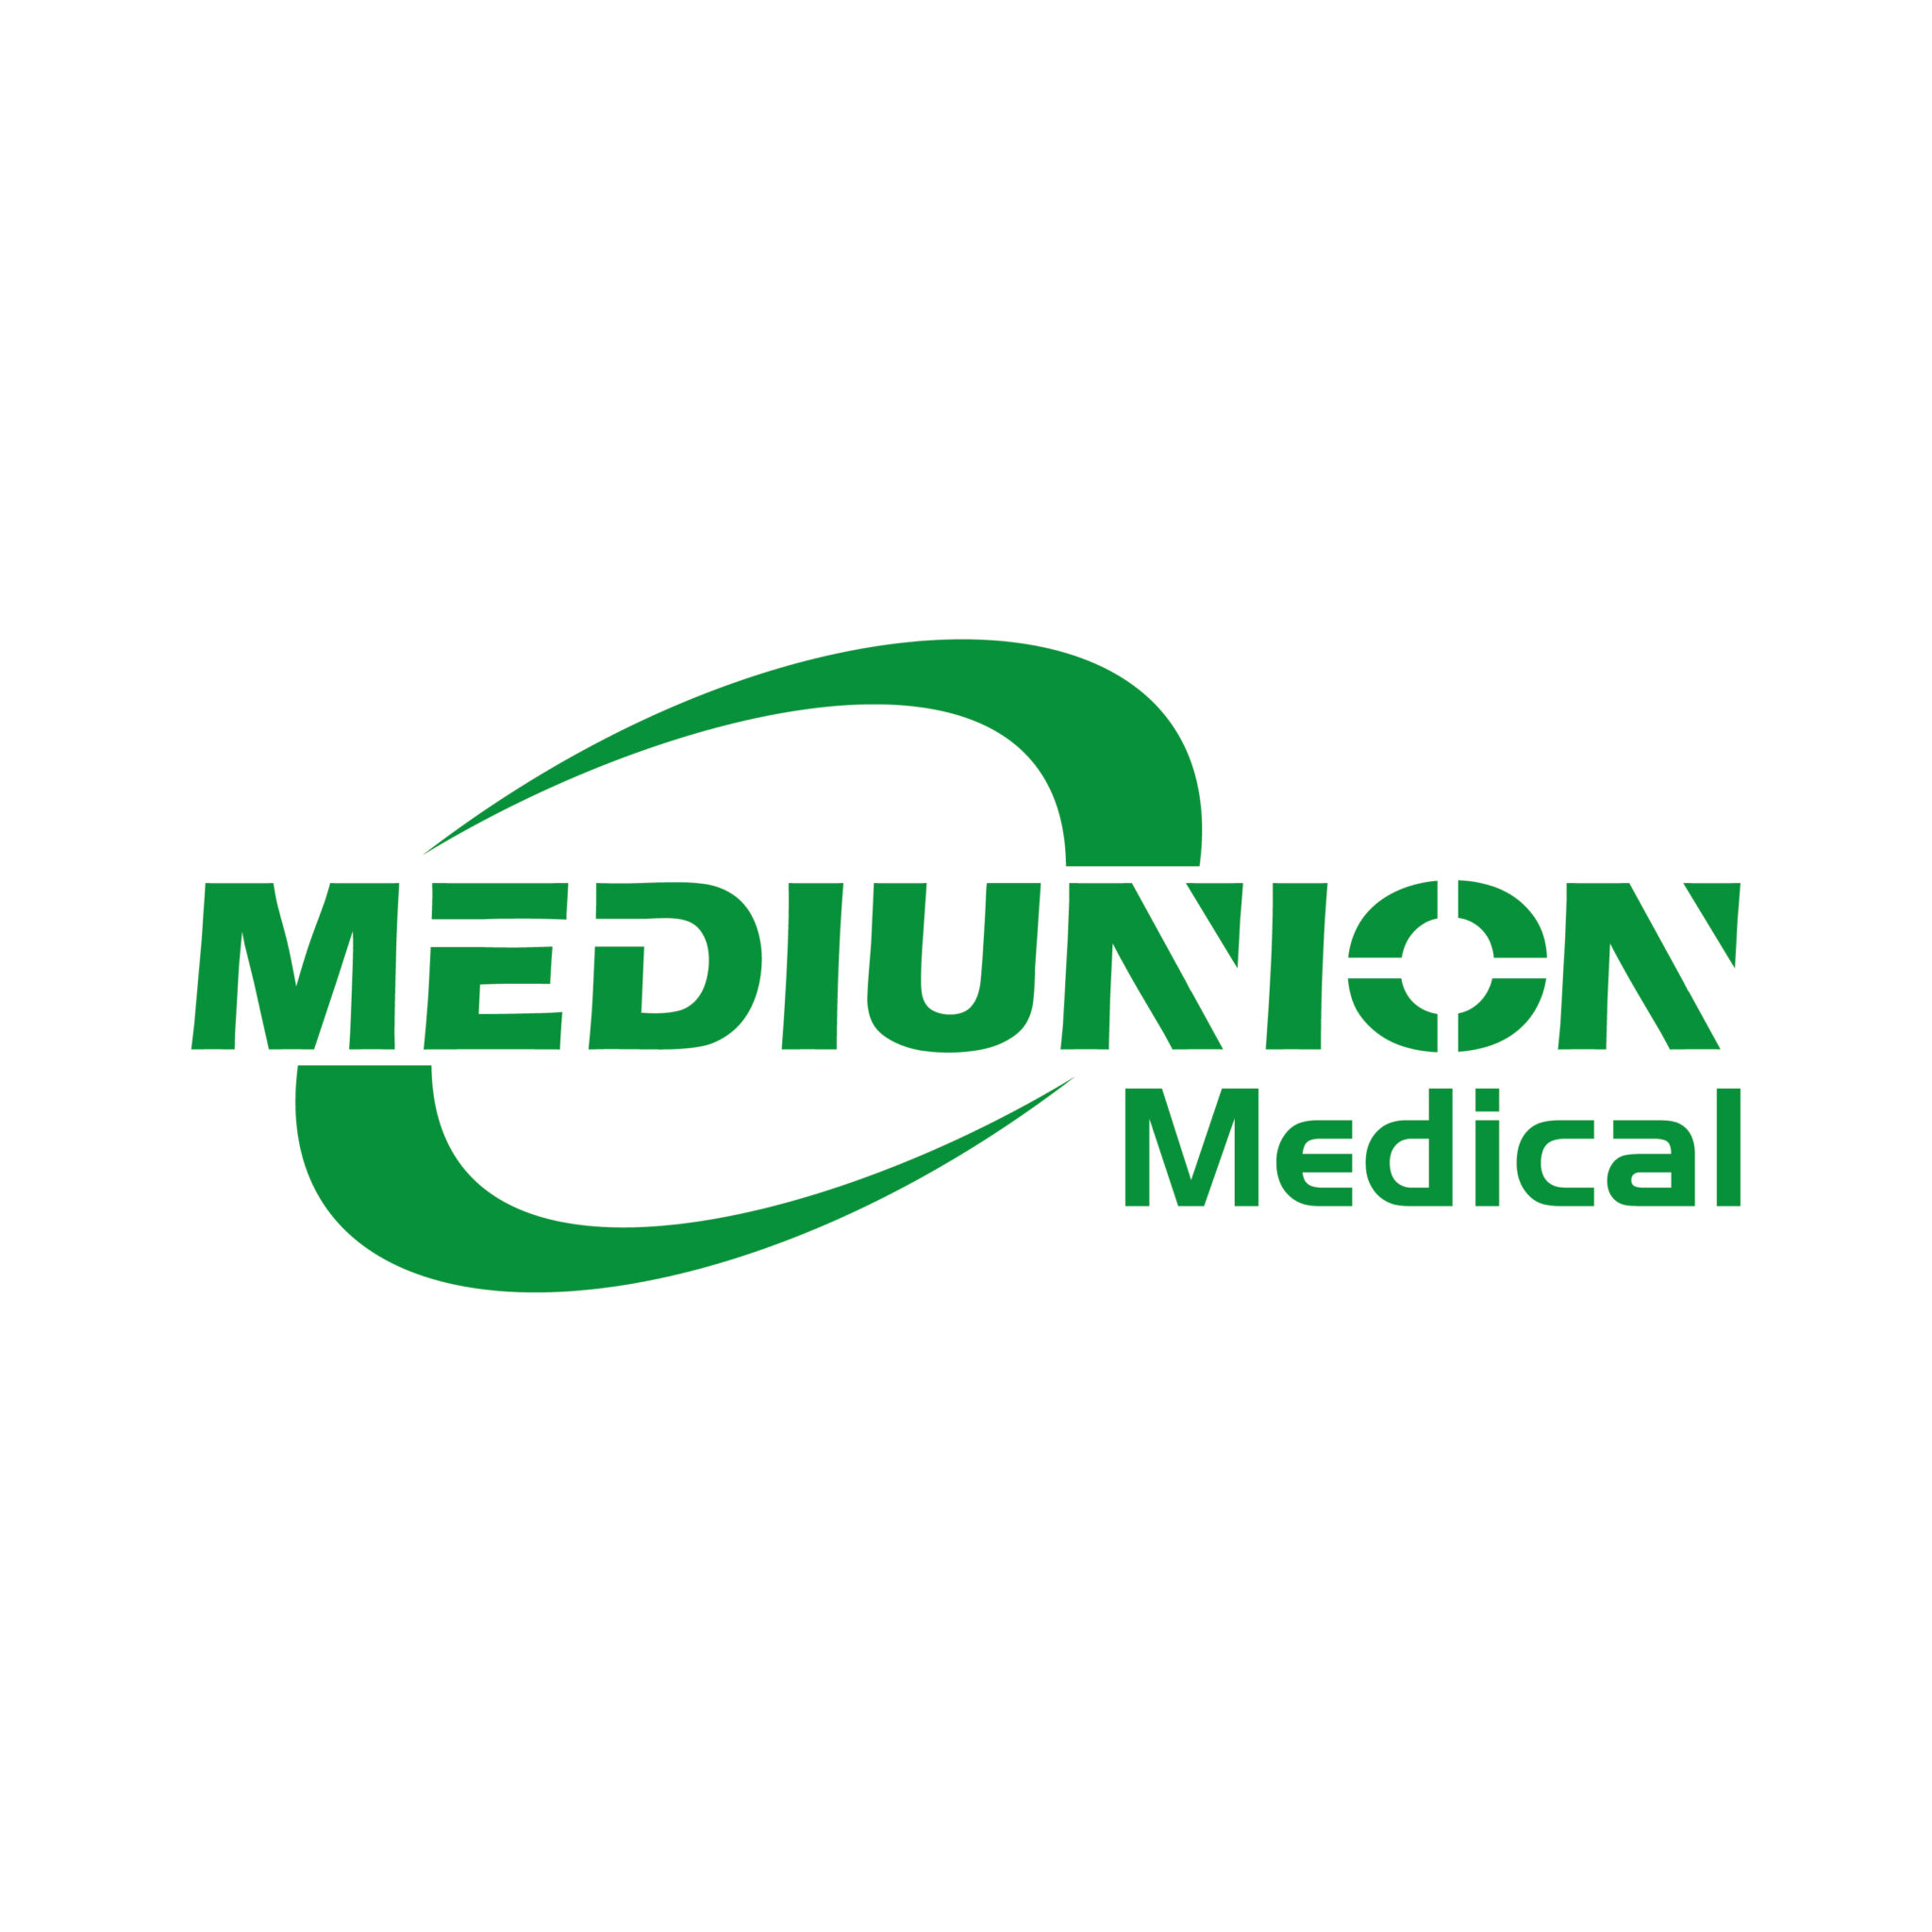 Mediunion Medical